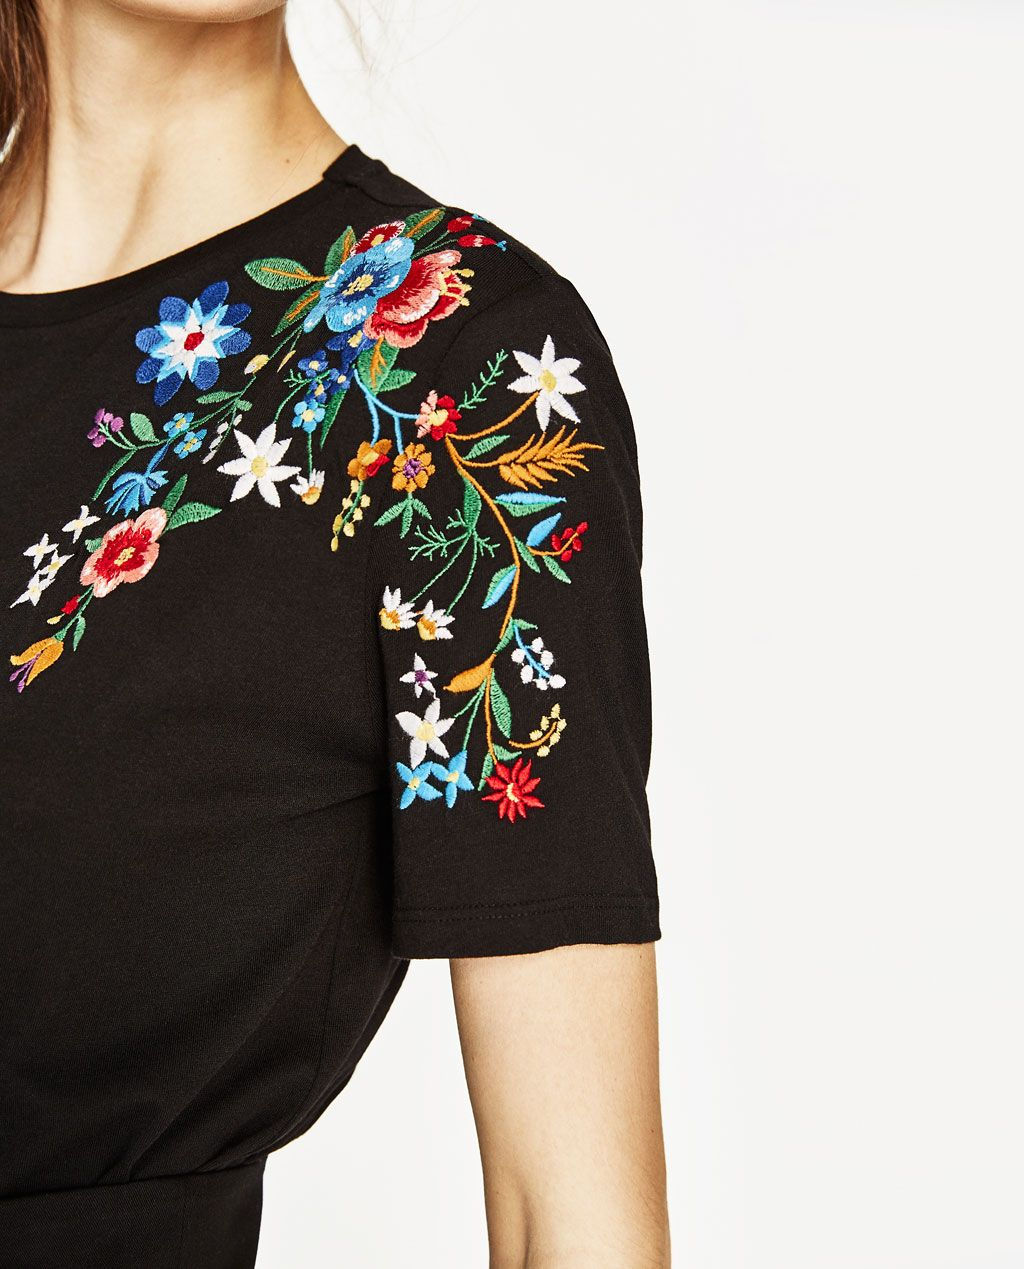 ec3cf8942 T-SHIRT WITH EMBROIDERED SHOULDER-Short sleeve-T-SHIRTS-WOMAN | ZARA United  States